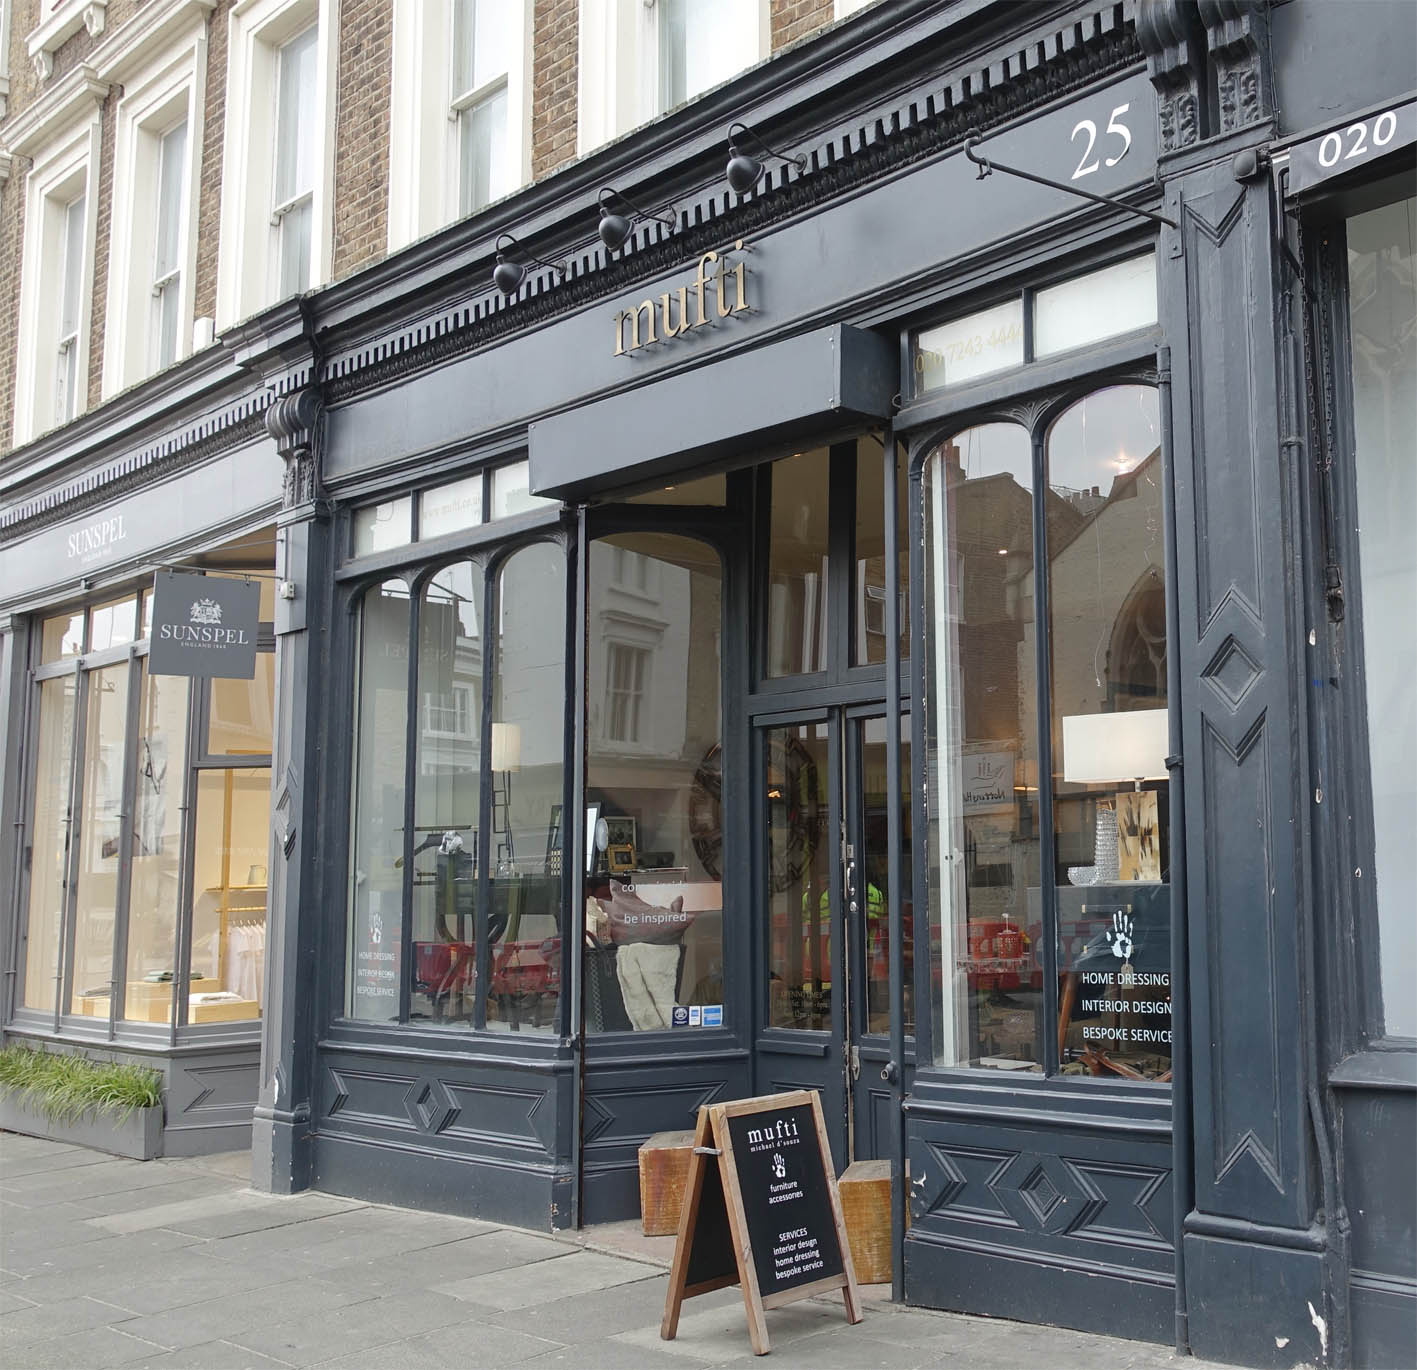 You can find Mufti on Kensington Park Road in vibrant Notting Hill.